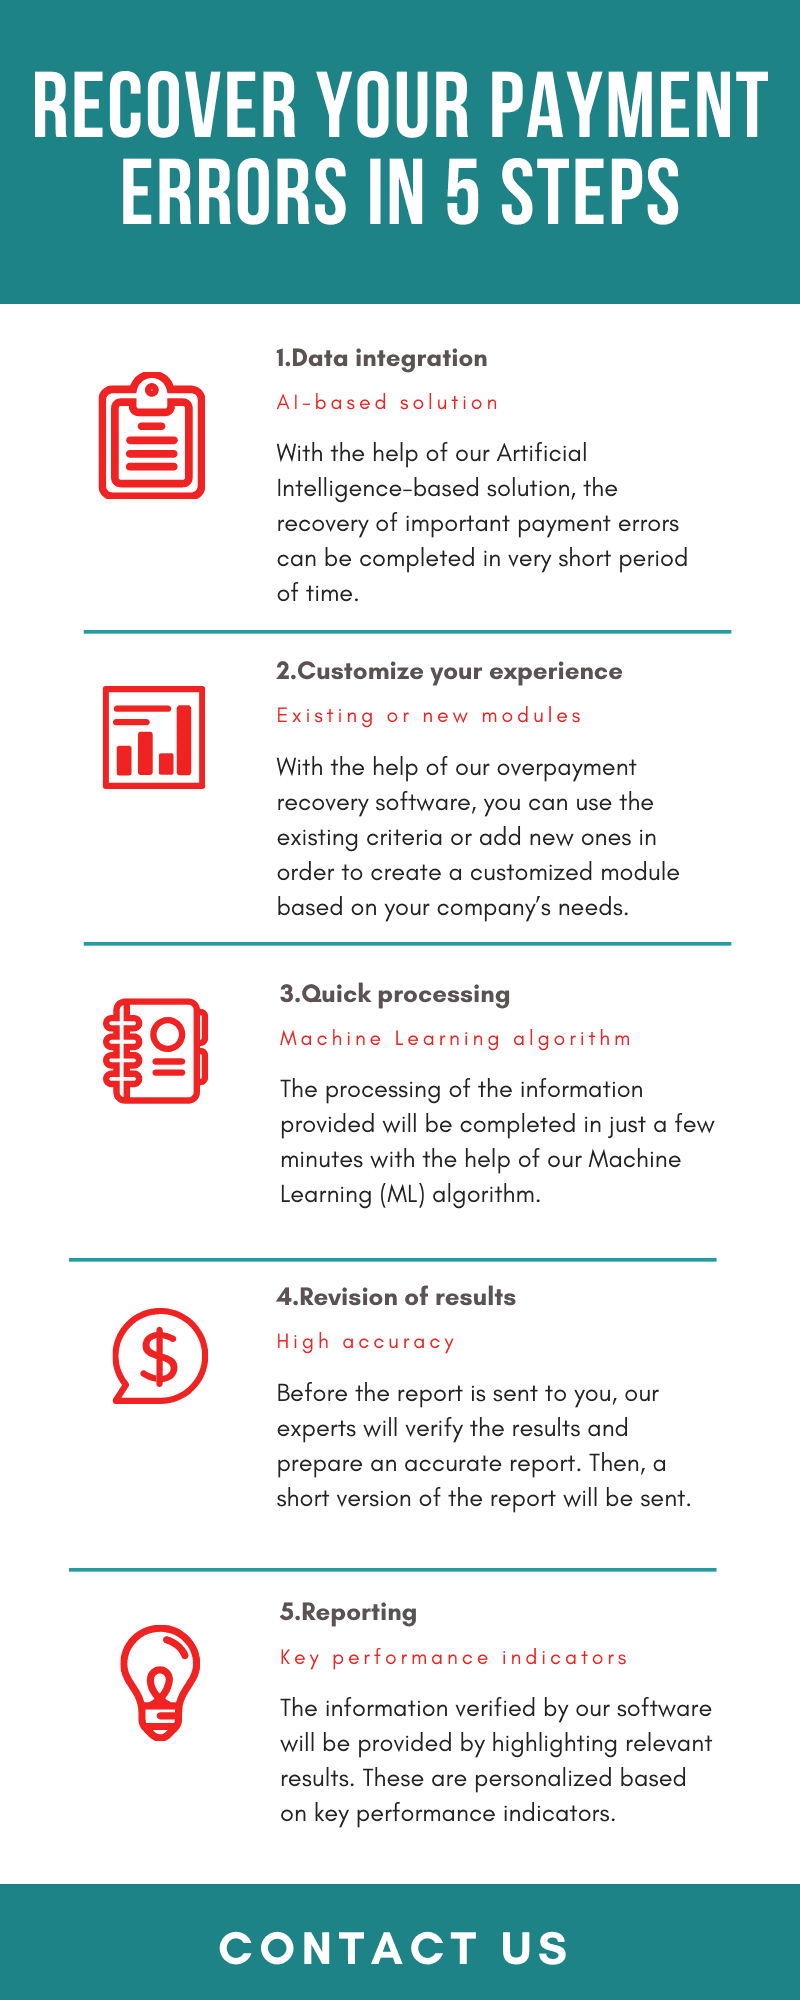 Recover your payment errors in 5 steps